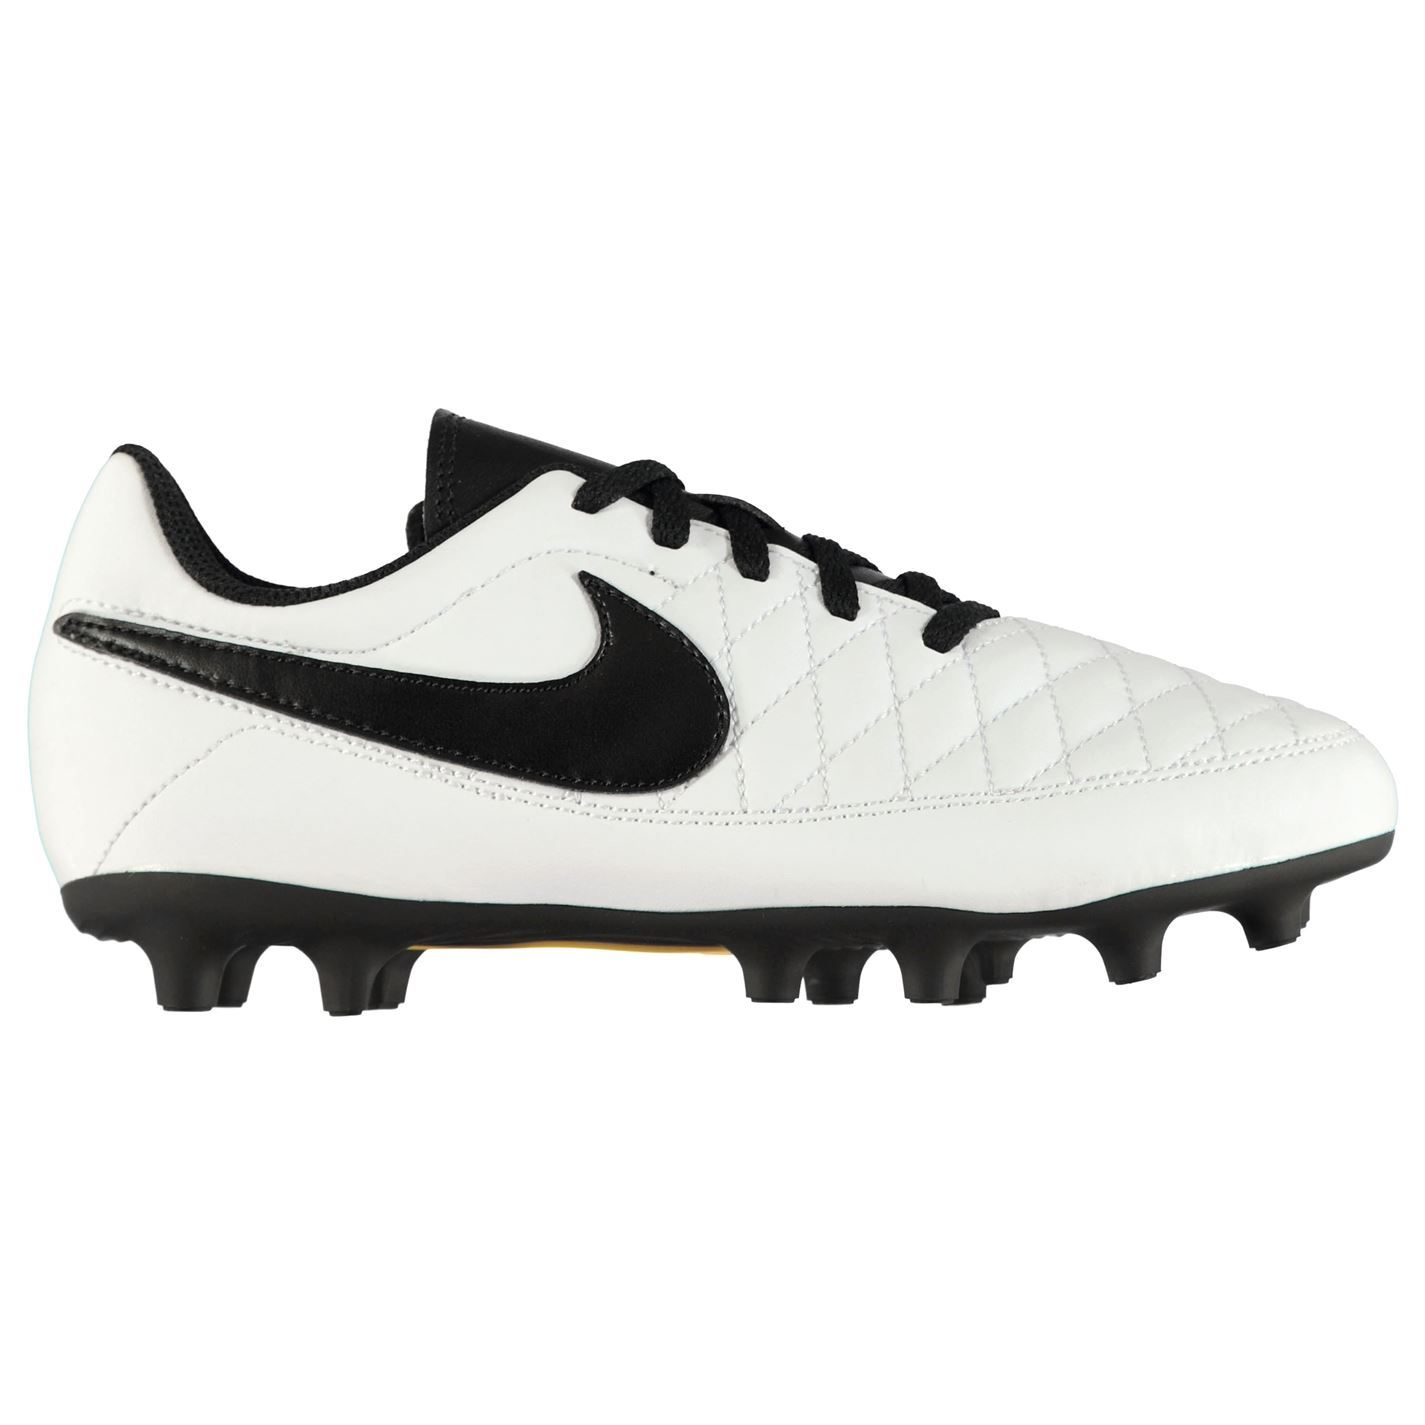 53603f6c797 Nike Majestry FG Firm Ground Football Boots Juniors Soccer Shoes ...